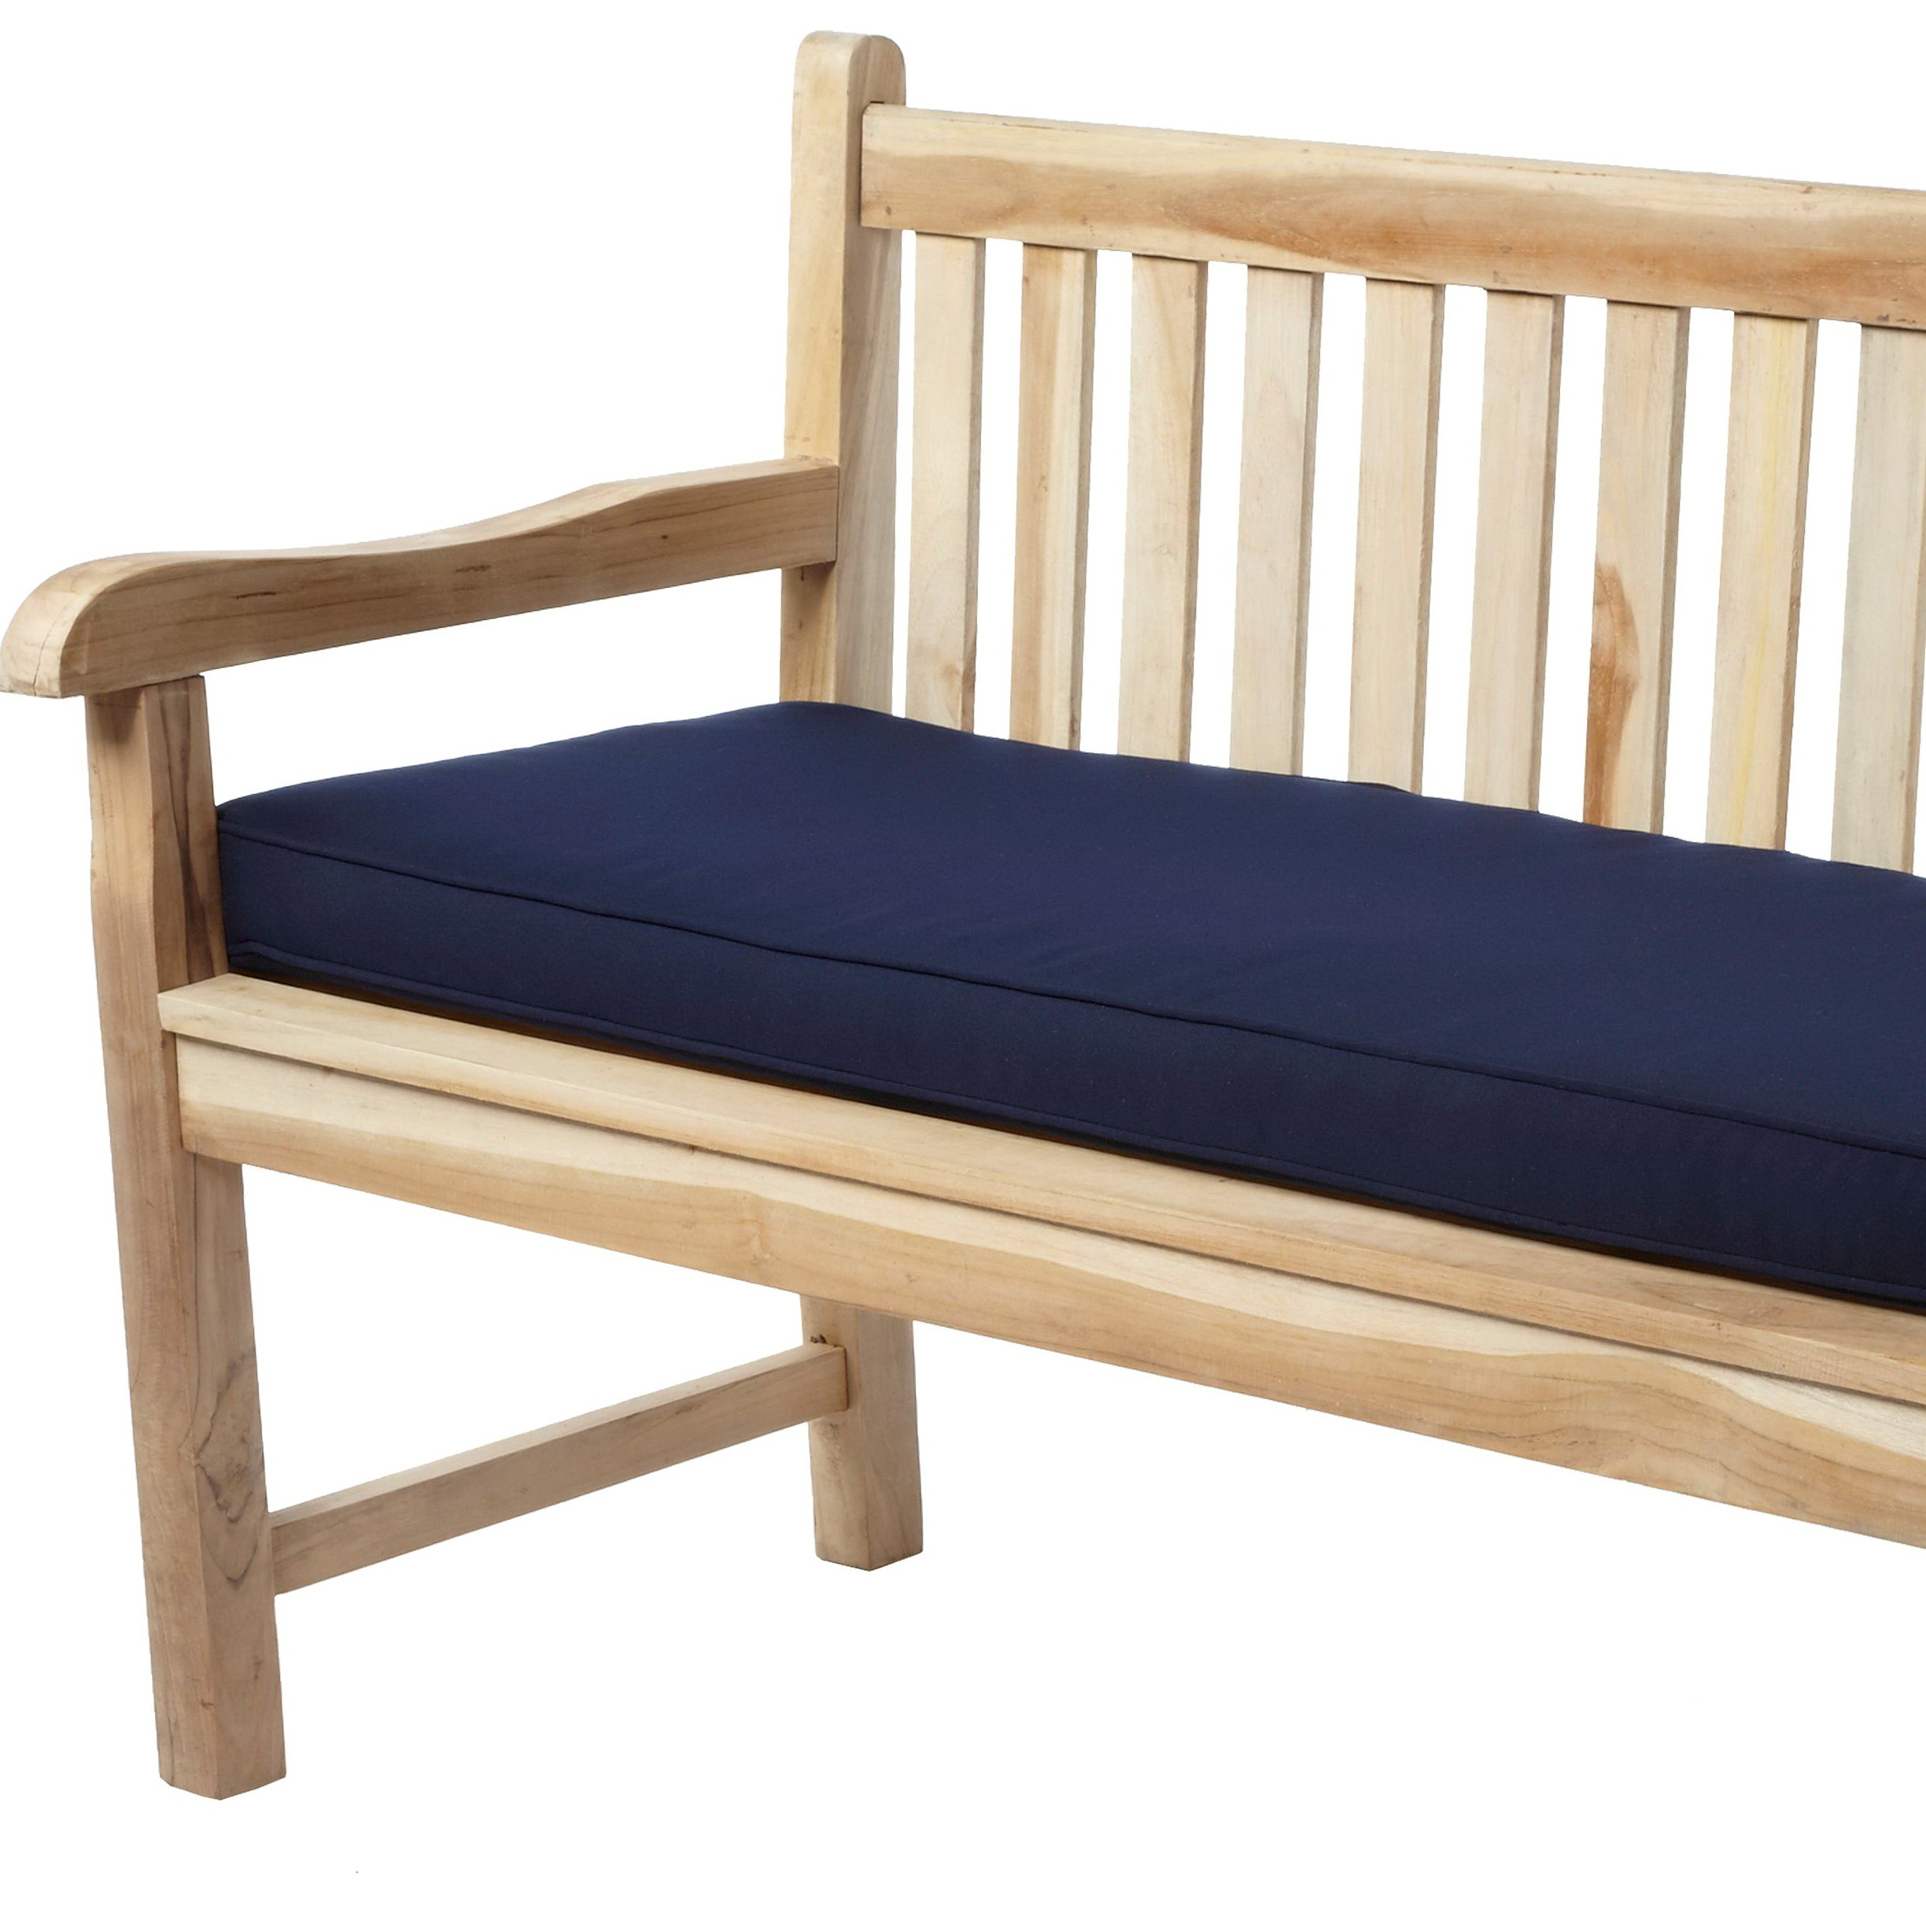 Bench Cushions Indoor 72 Inch